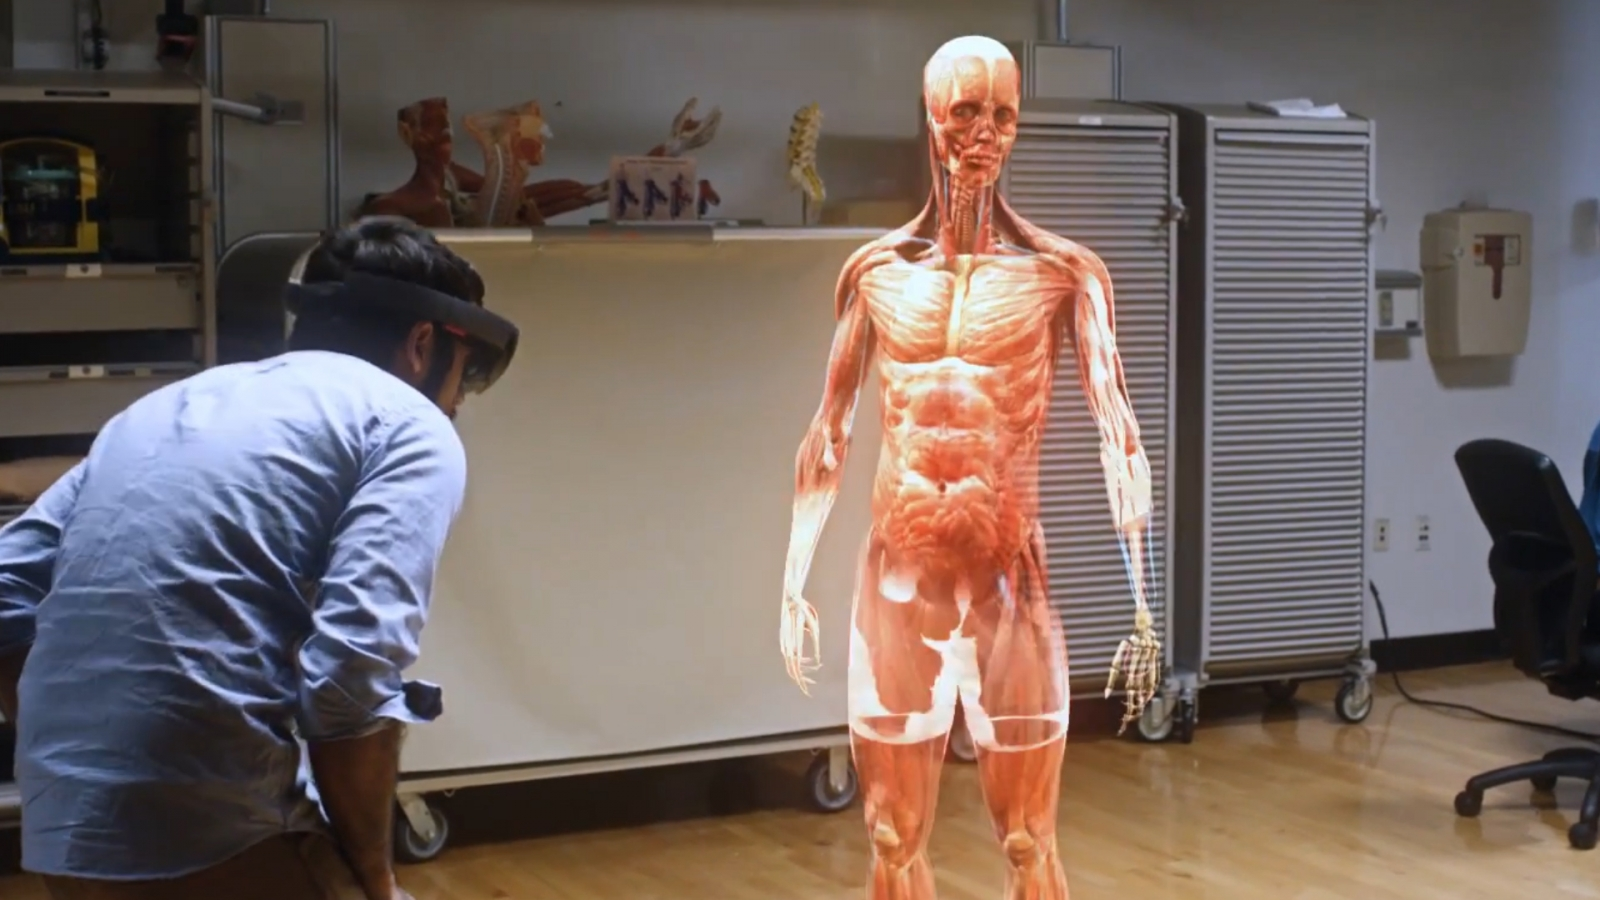 an overview of virtual reality technology and its use today Virtual reality technology gives high school students greater insight into what it's like to be someone with suspected mild cognitive impairment, or someone progressing through the continuum of.